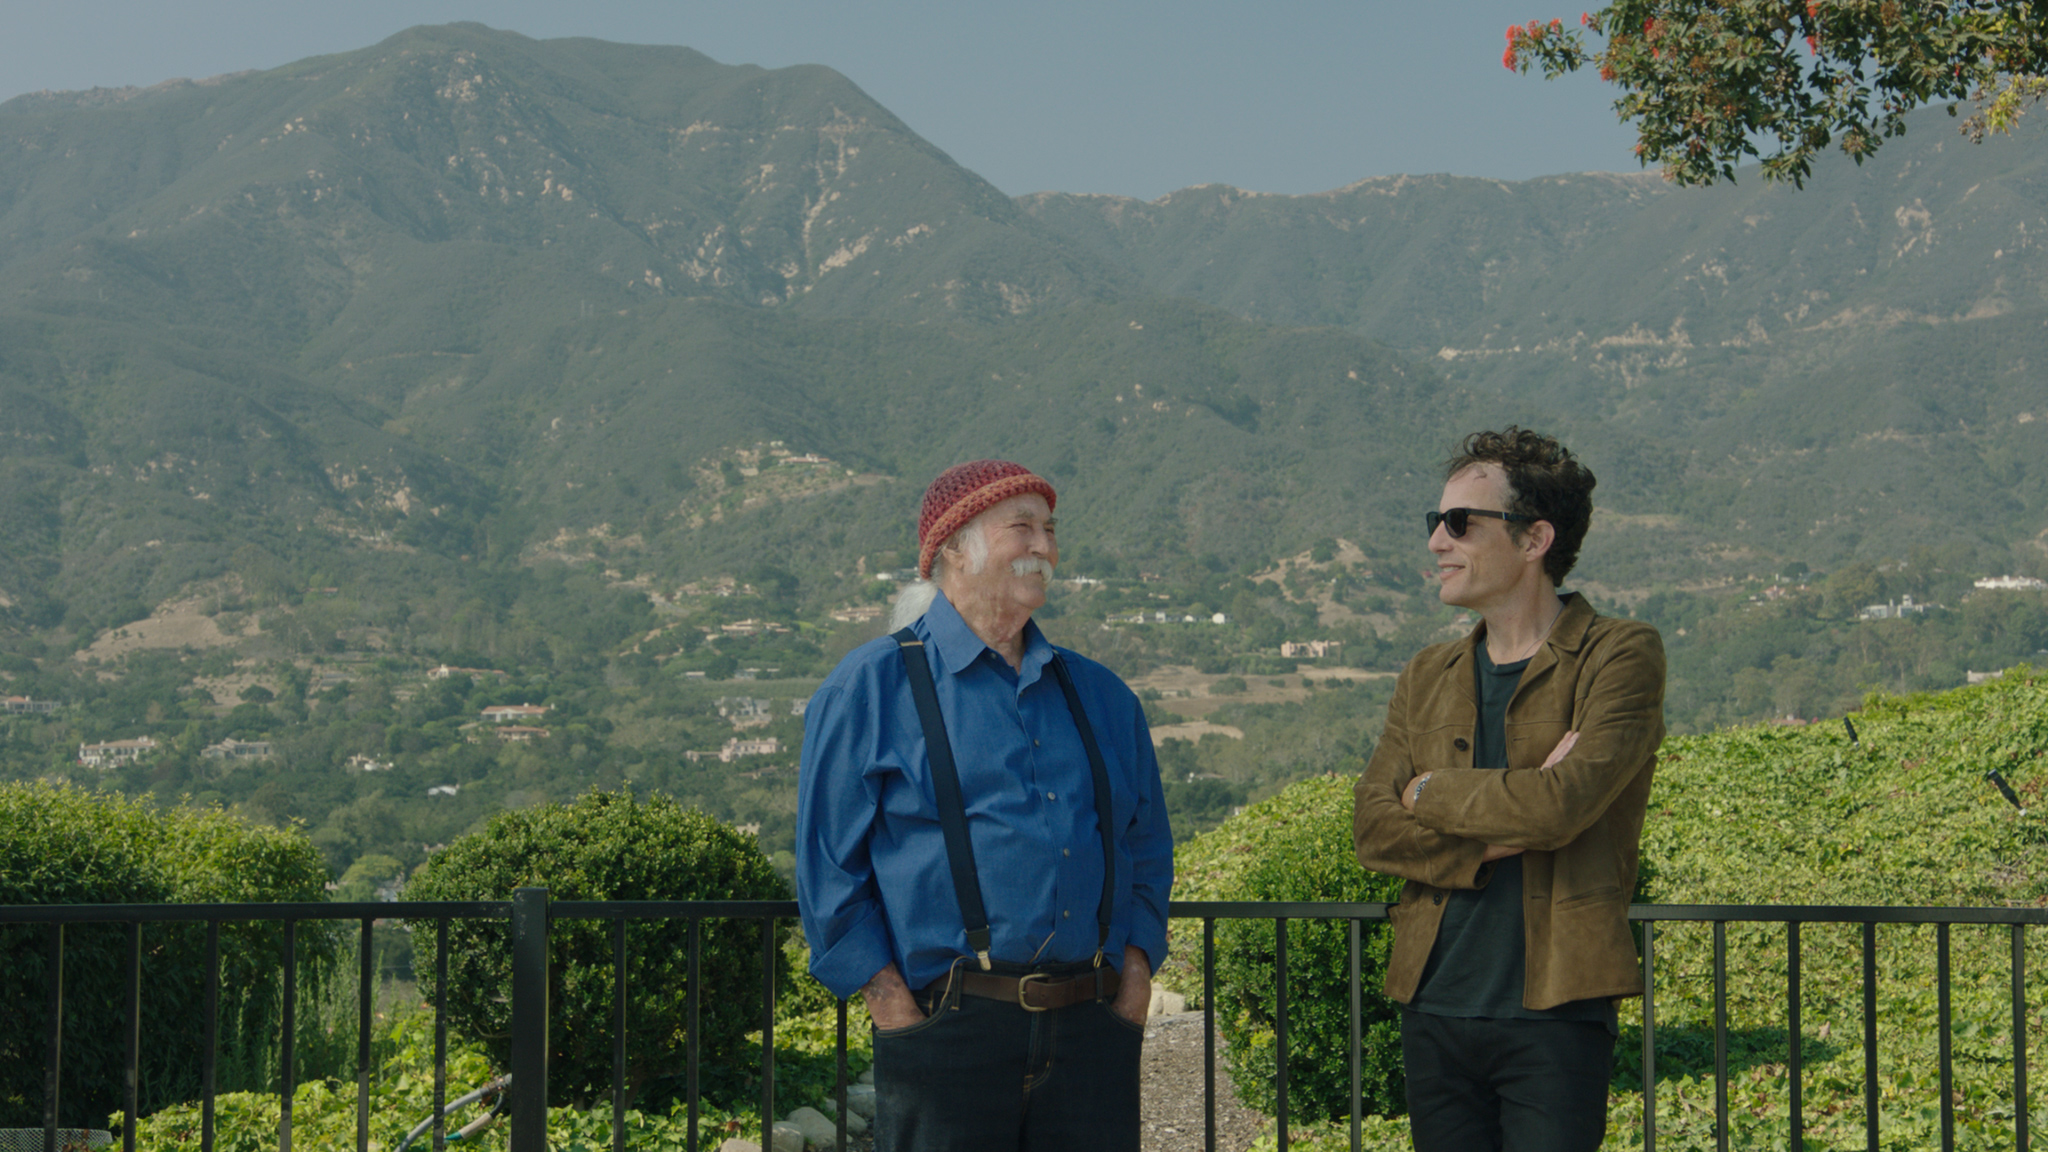 """David Crosby (left) talks to Jakob Dylan about his days with The Byrds, and the Laurel Canyon era of music, in the documentary """"Echo in the Canyon."""" (Photo courtesy Greenwich Entertainment.)"""